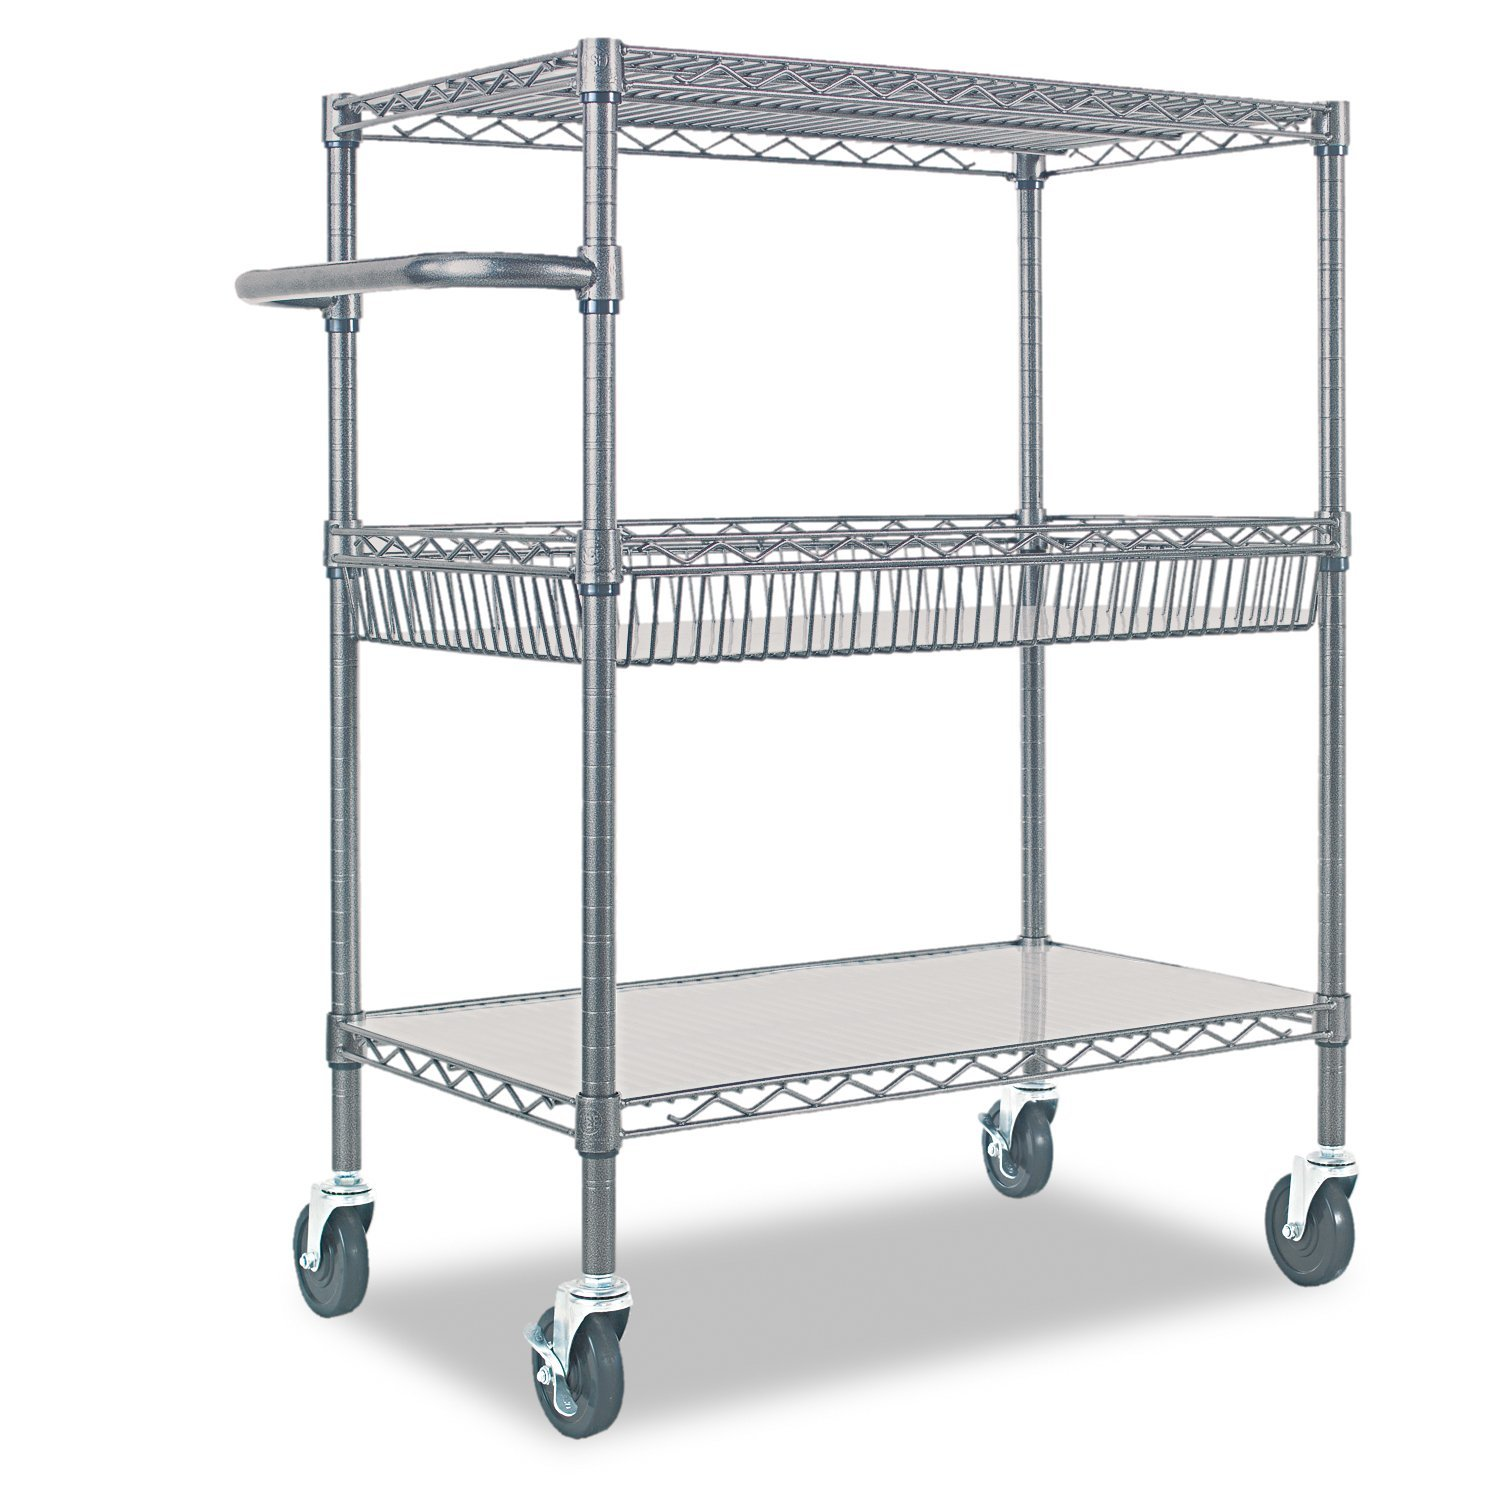 Beau Amazon.com: Alera 3 Tier Wire Rolling Cart, Black Anthracite: Kitchen U0026  Dining